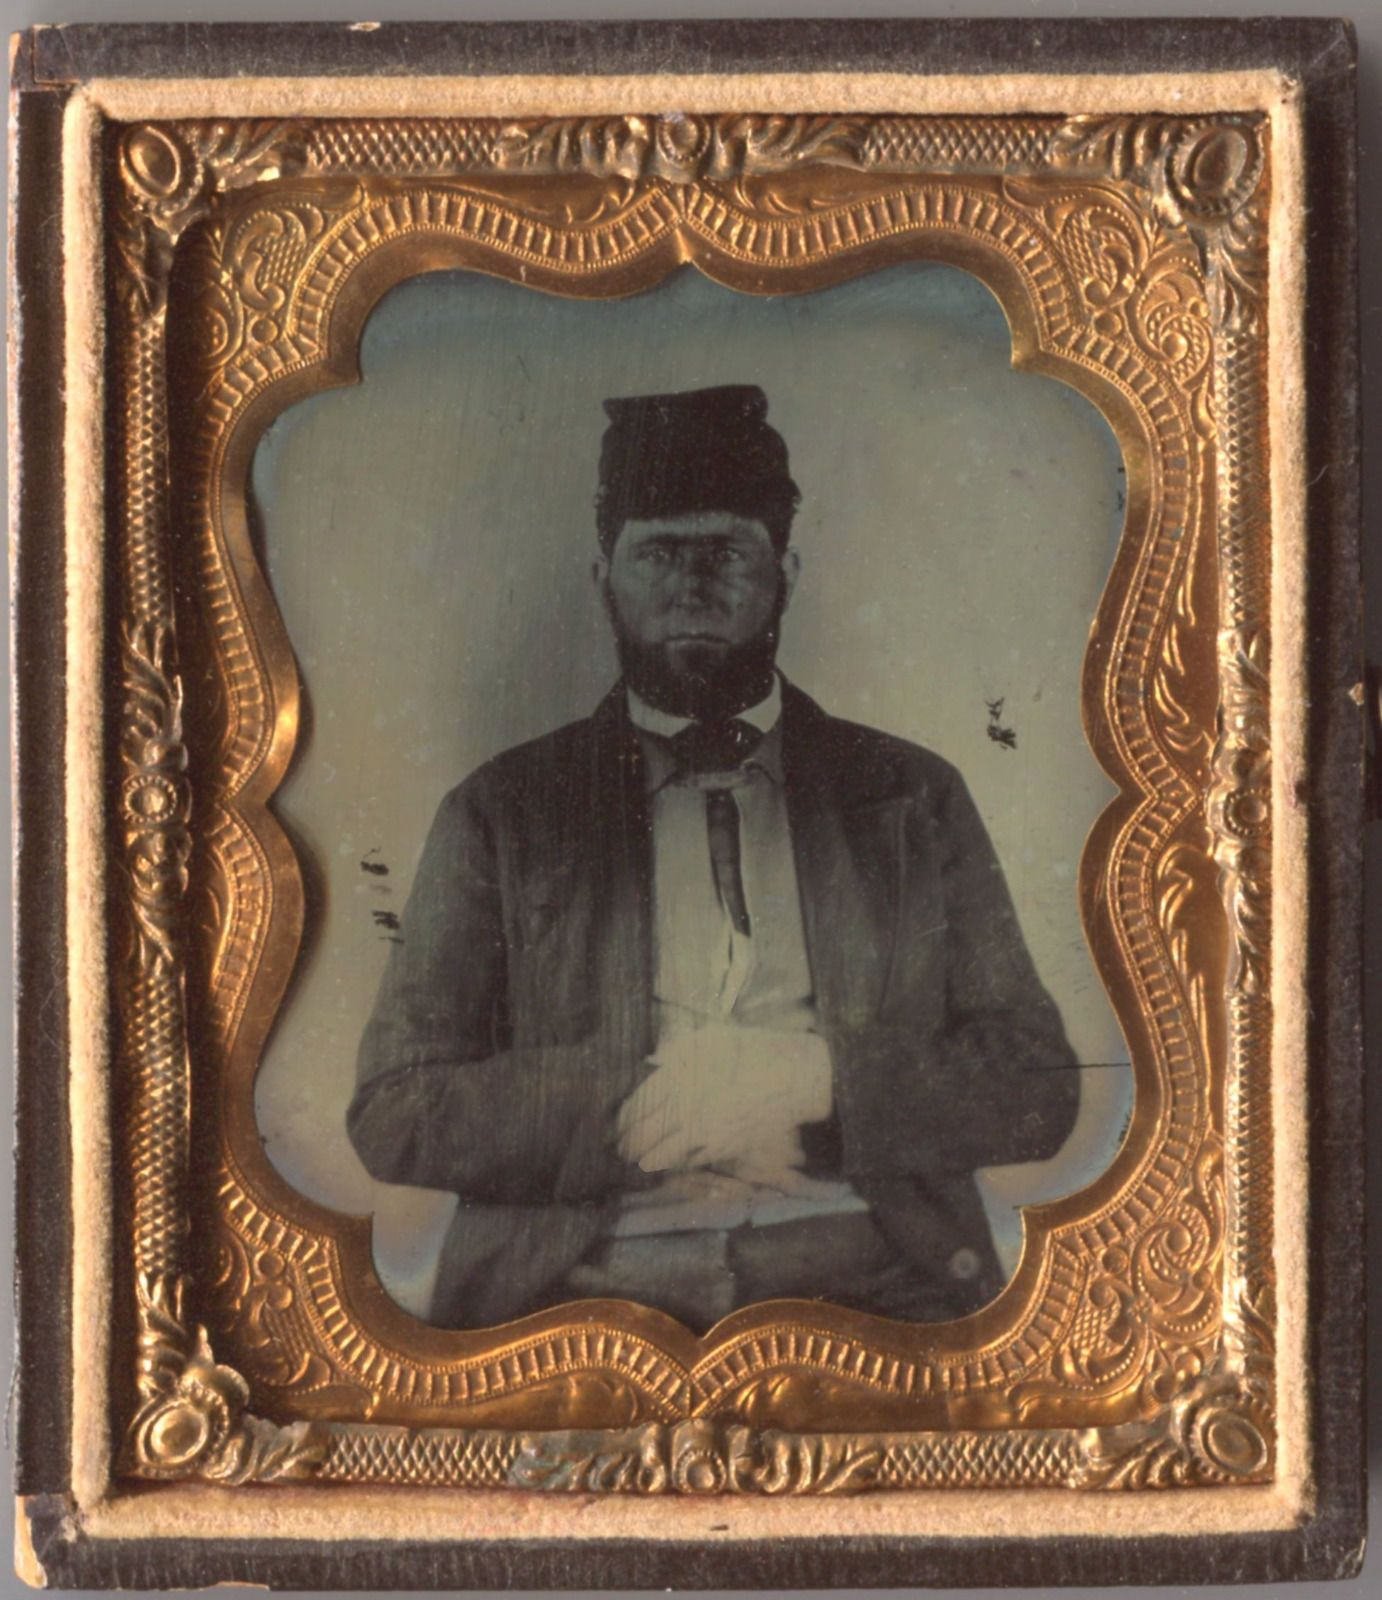 6th plate ruby ambrotype of a civil war soldier in half of eagle & shield case | eBay